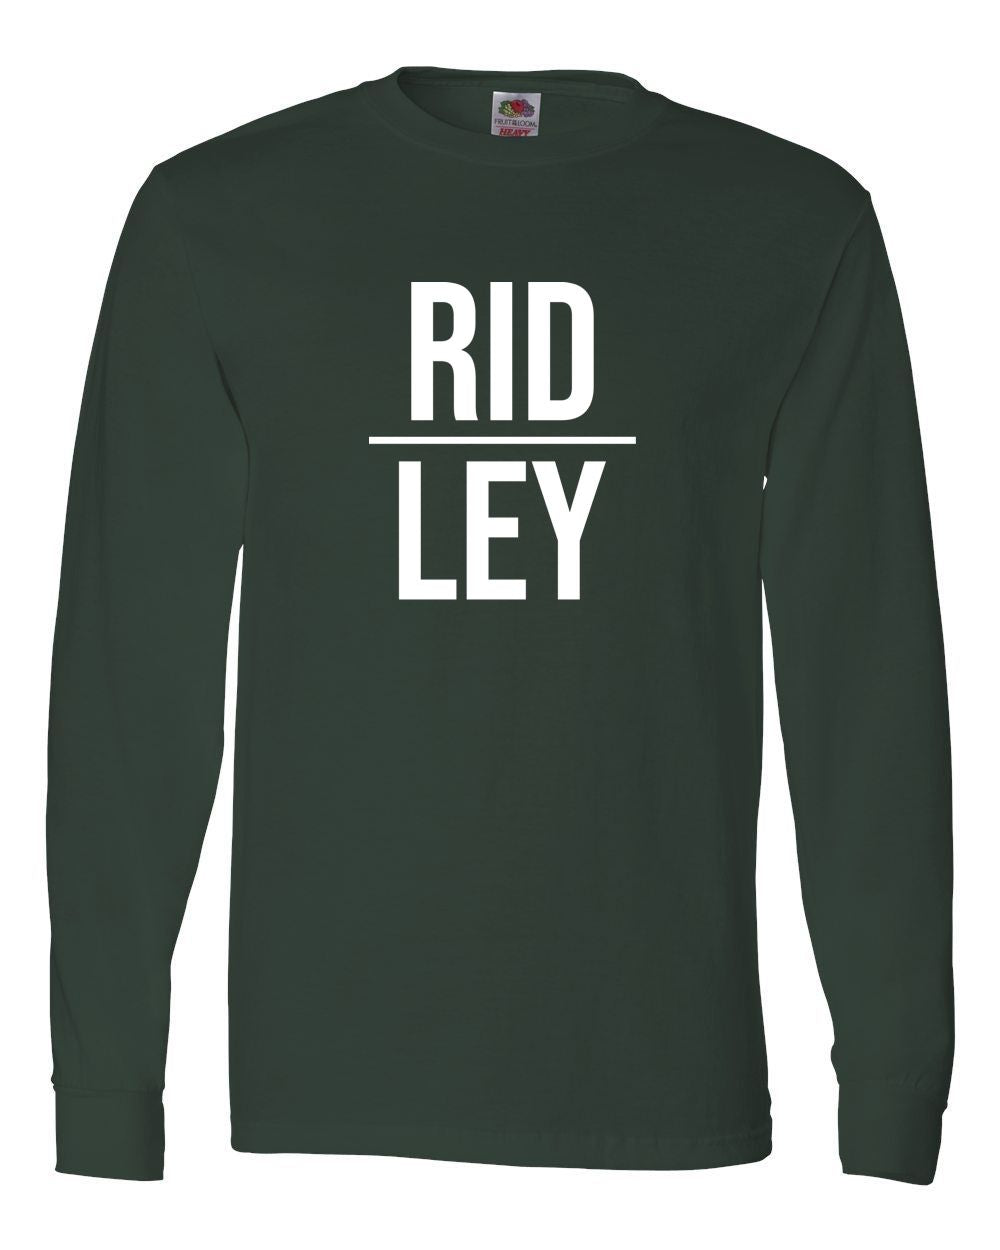 Adult Green Ridley Long Sleeve T-Shirt